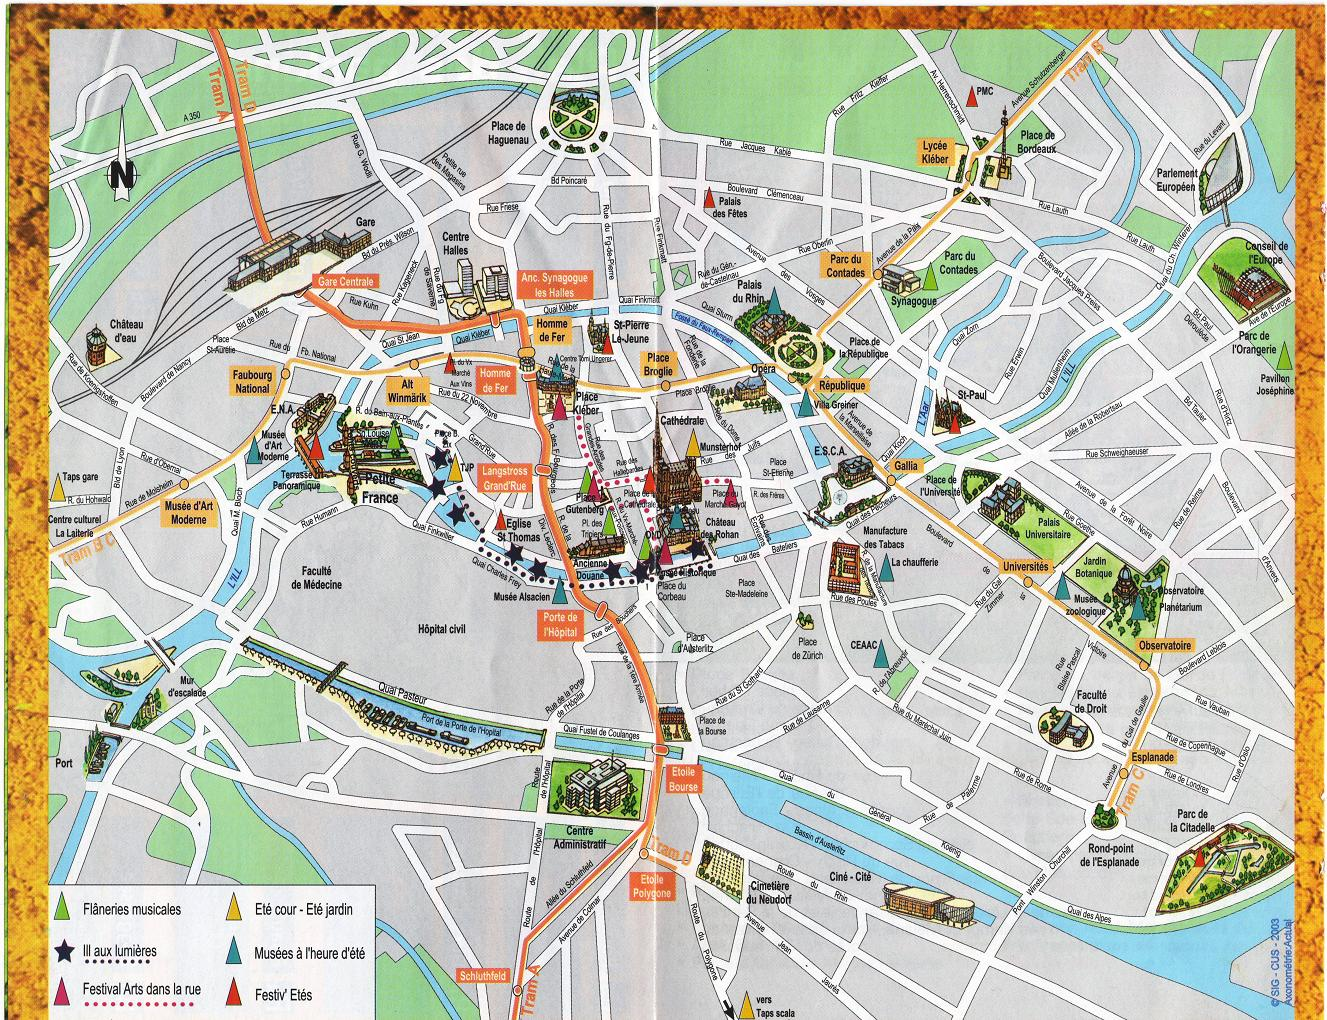 strassburg tourist map strassburg france mappery. Black Bedroom Furniture Sets. Home Design Ideas